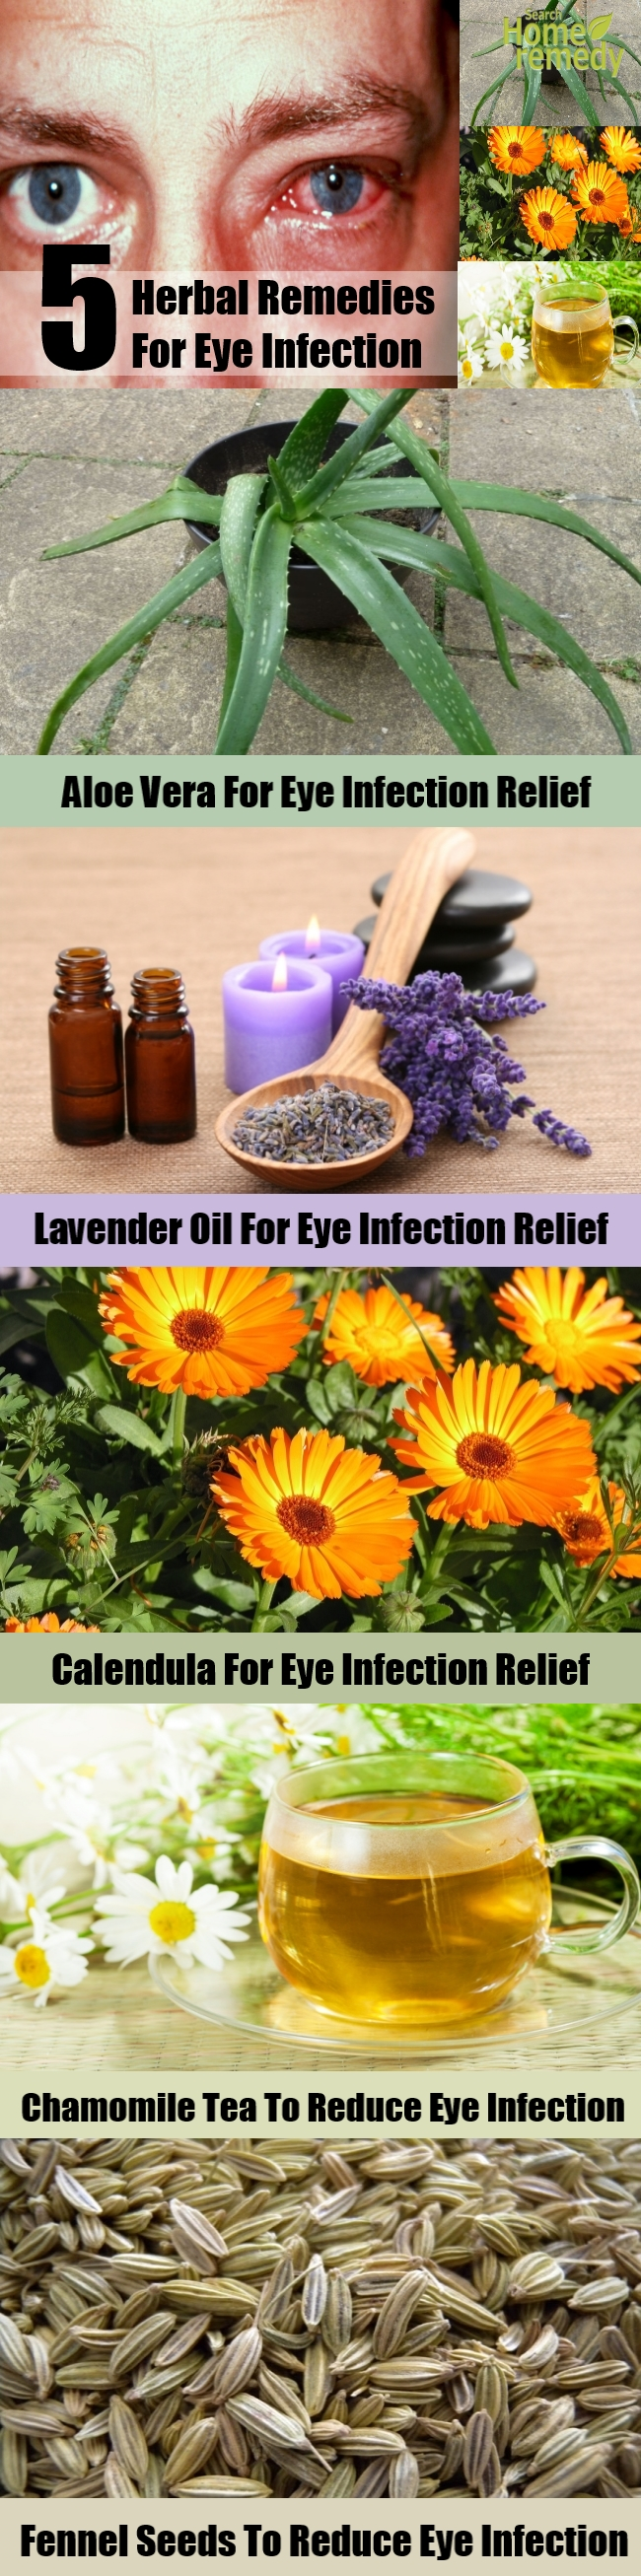 Top 5 Herbal Remedies For Eye Infection